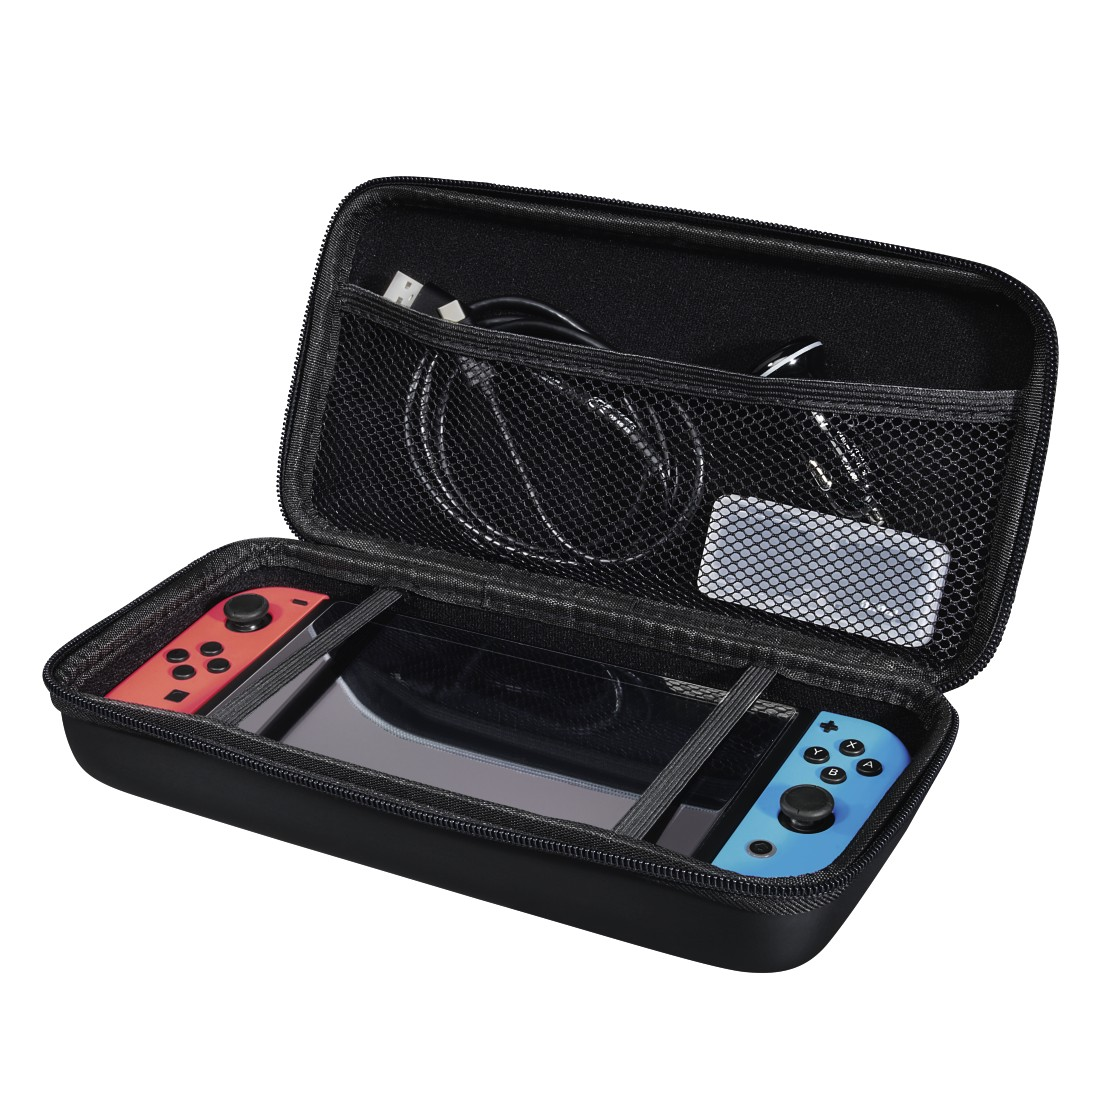 awx2 High-Res Appliance 2 - Hama, Hardcase for Nintendo Switch, black